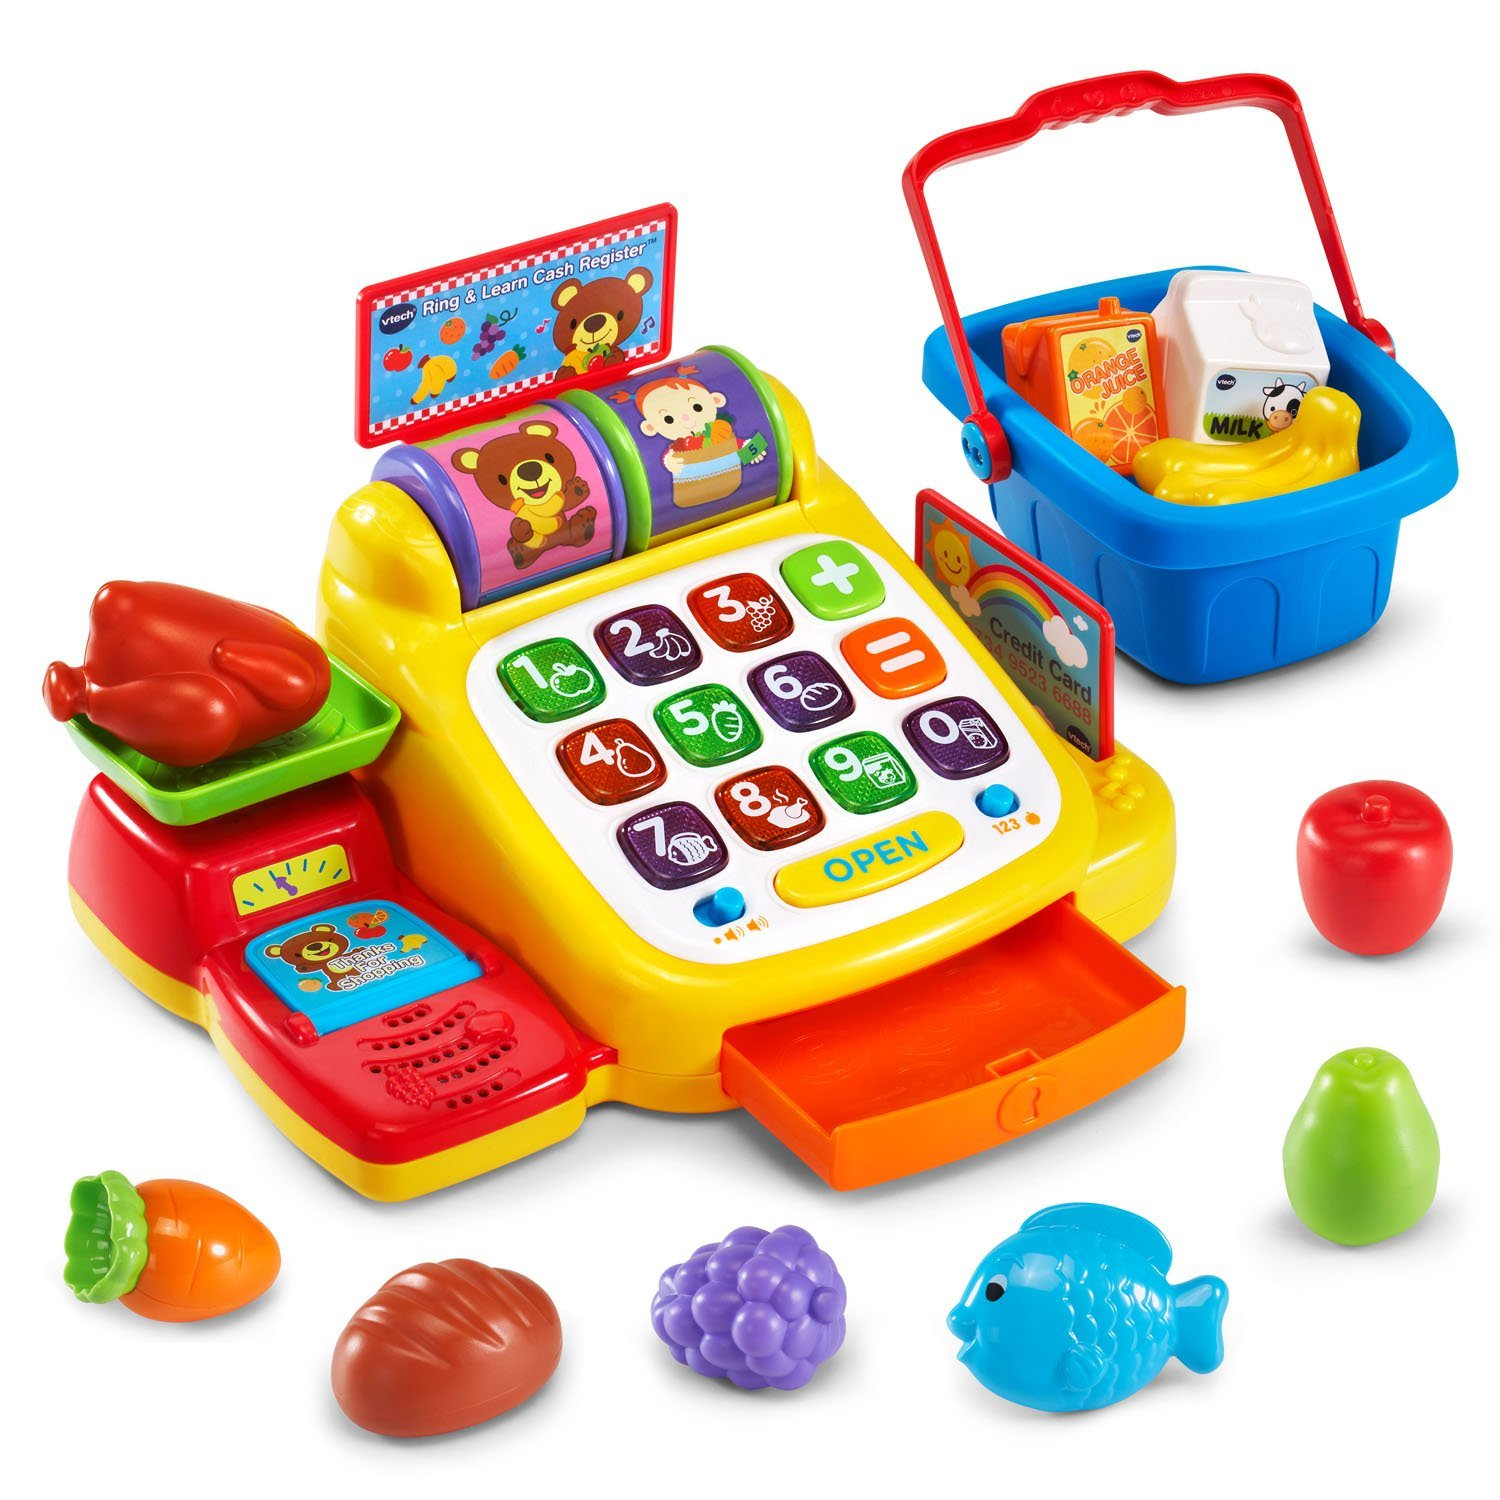 Little tikes cash register - Little Tikes Cash Register 33